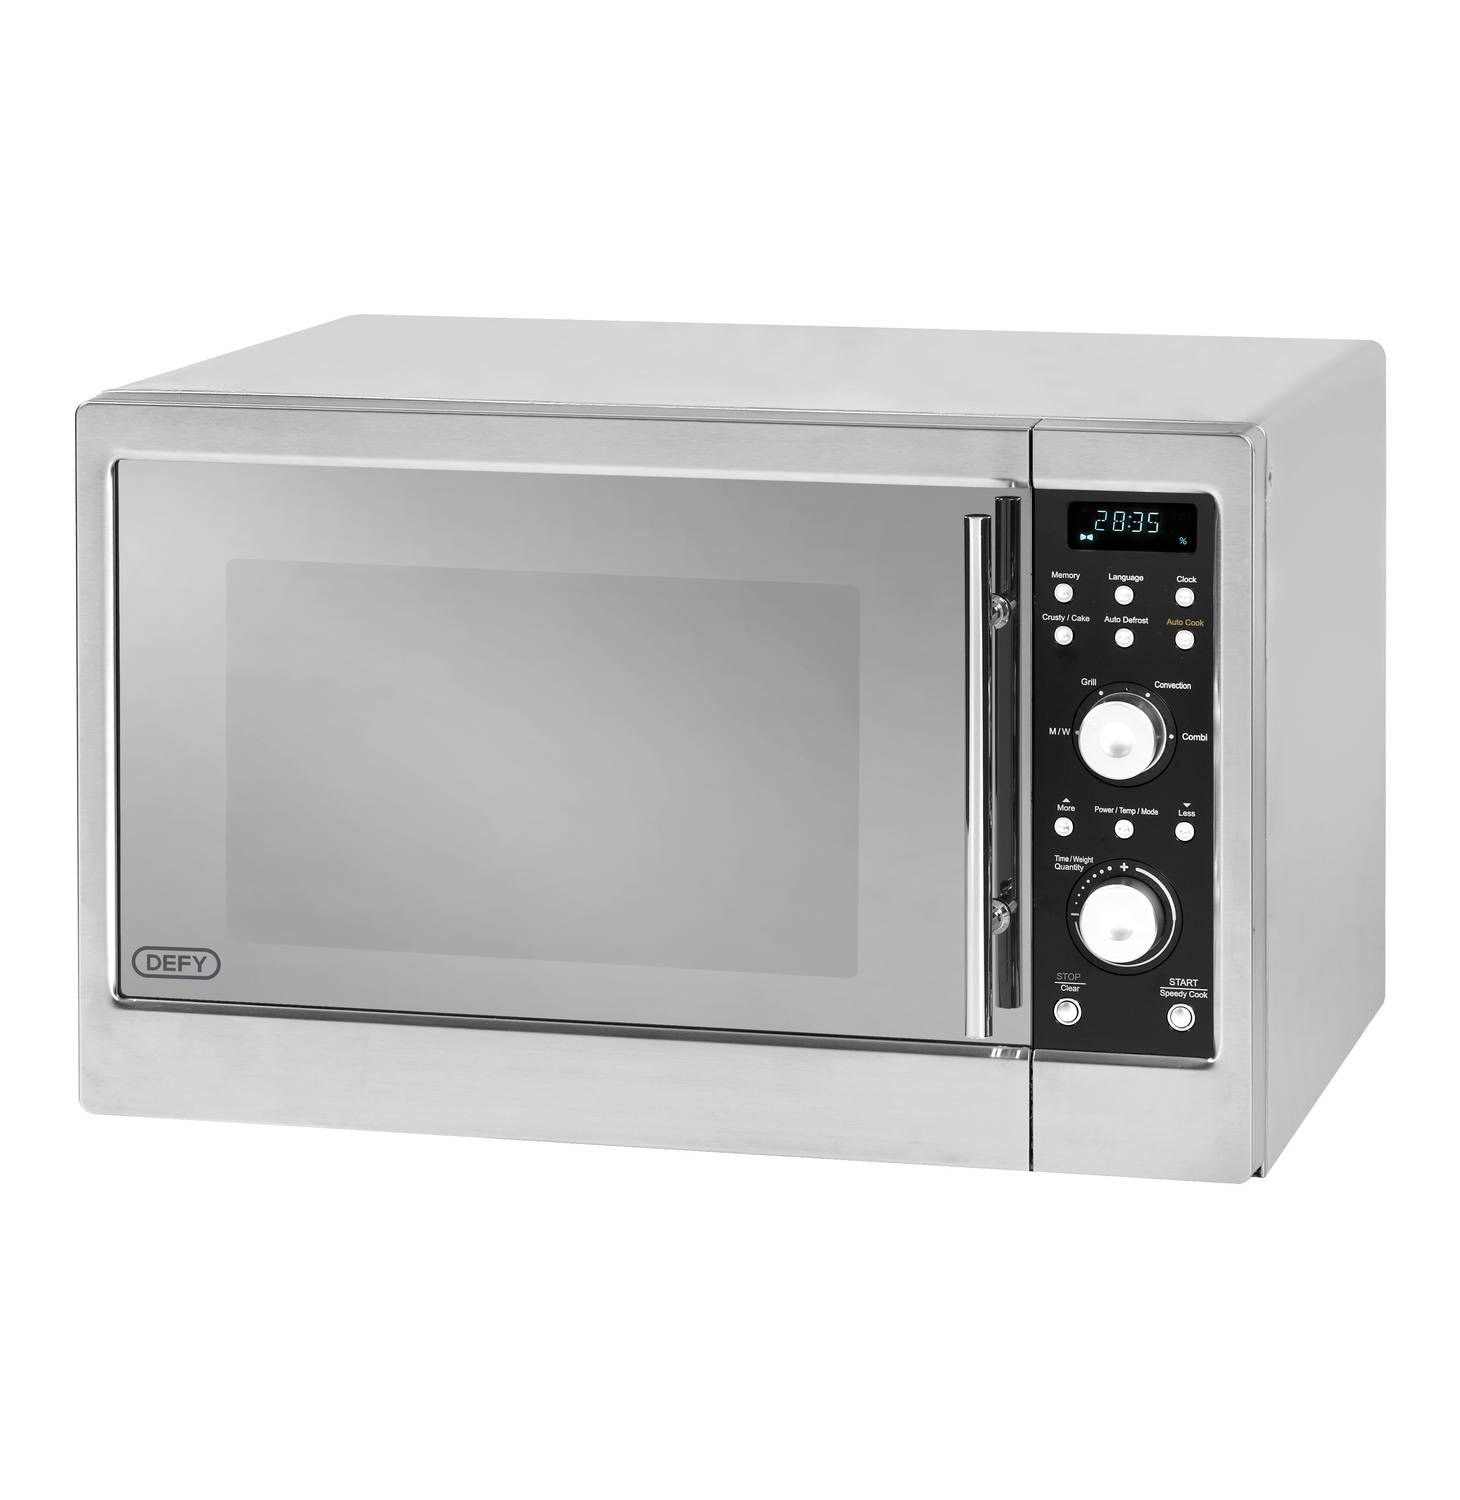 Convection Microwave Oven Online: DEFY 42 L Convection\Grill Microwave Oven Metallic Finish